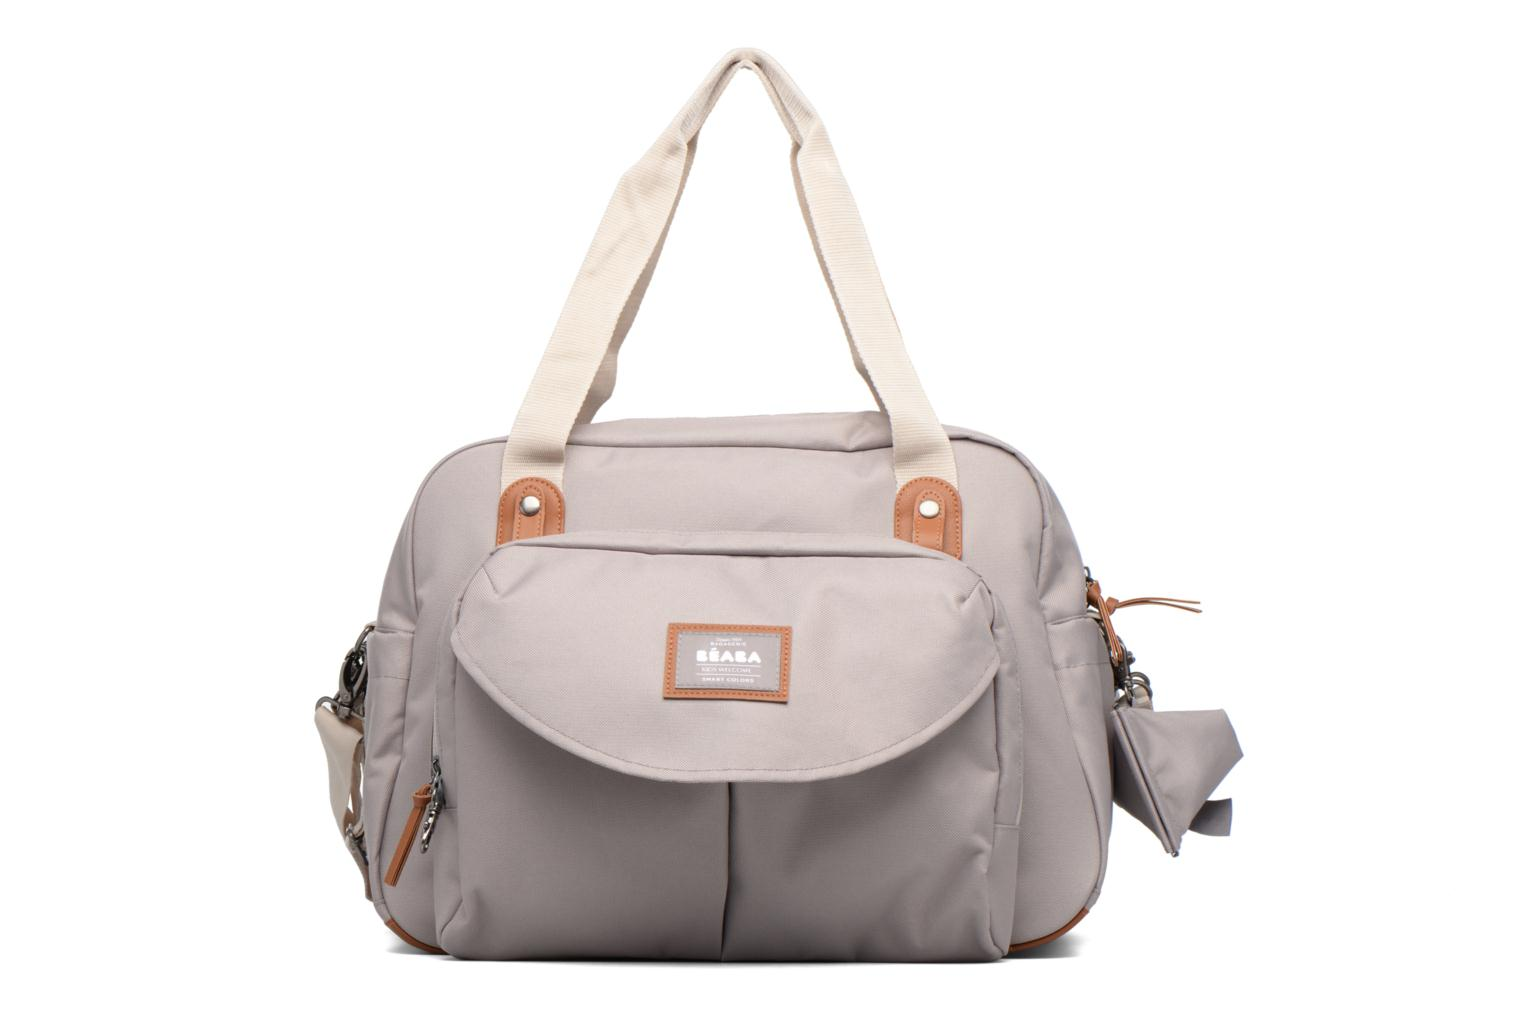 GENEVE II Sac à langer Taupe